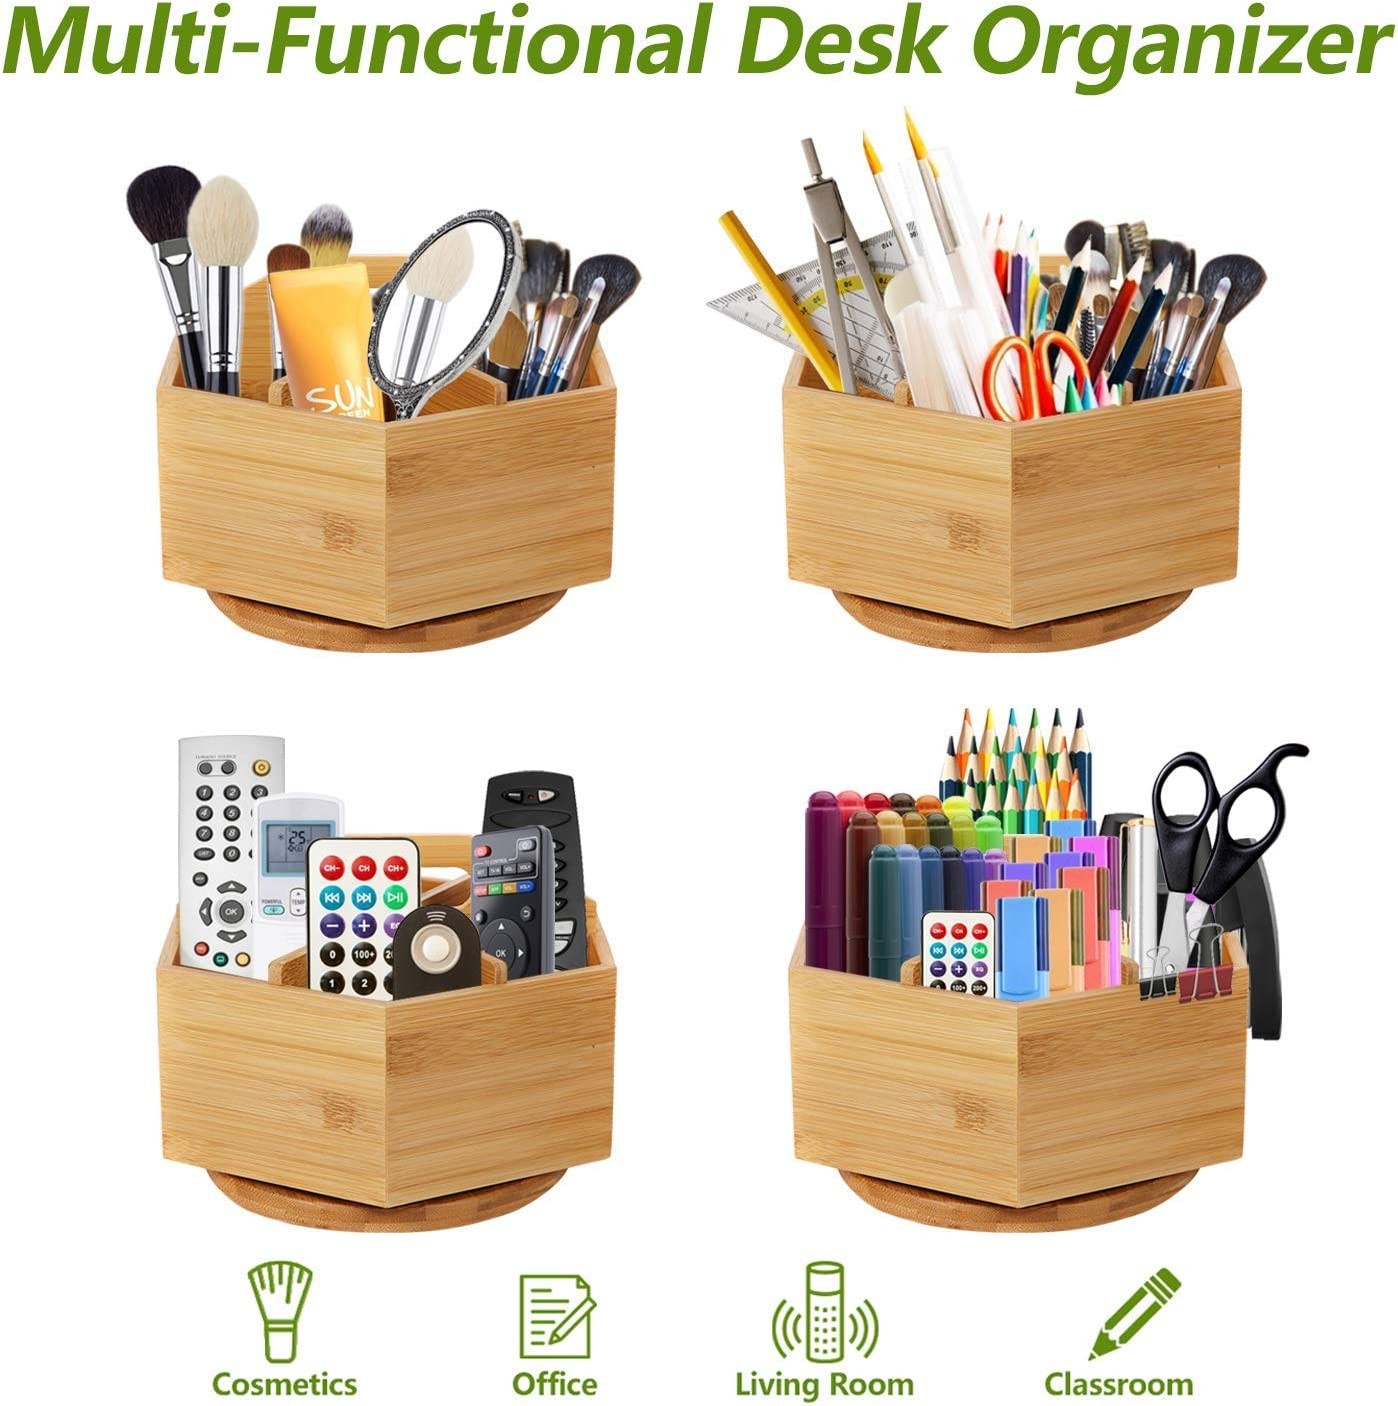 Paint Brushes Office Supplies Desktop Storage Caddy Marbrasse Bamboo Art Supply Desk Organizer Markers Rotating Pencil Holder with 6 Compartments Like Colored Pencils Pen